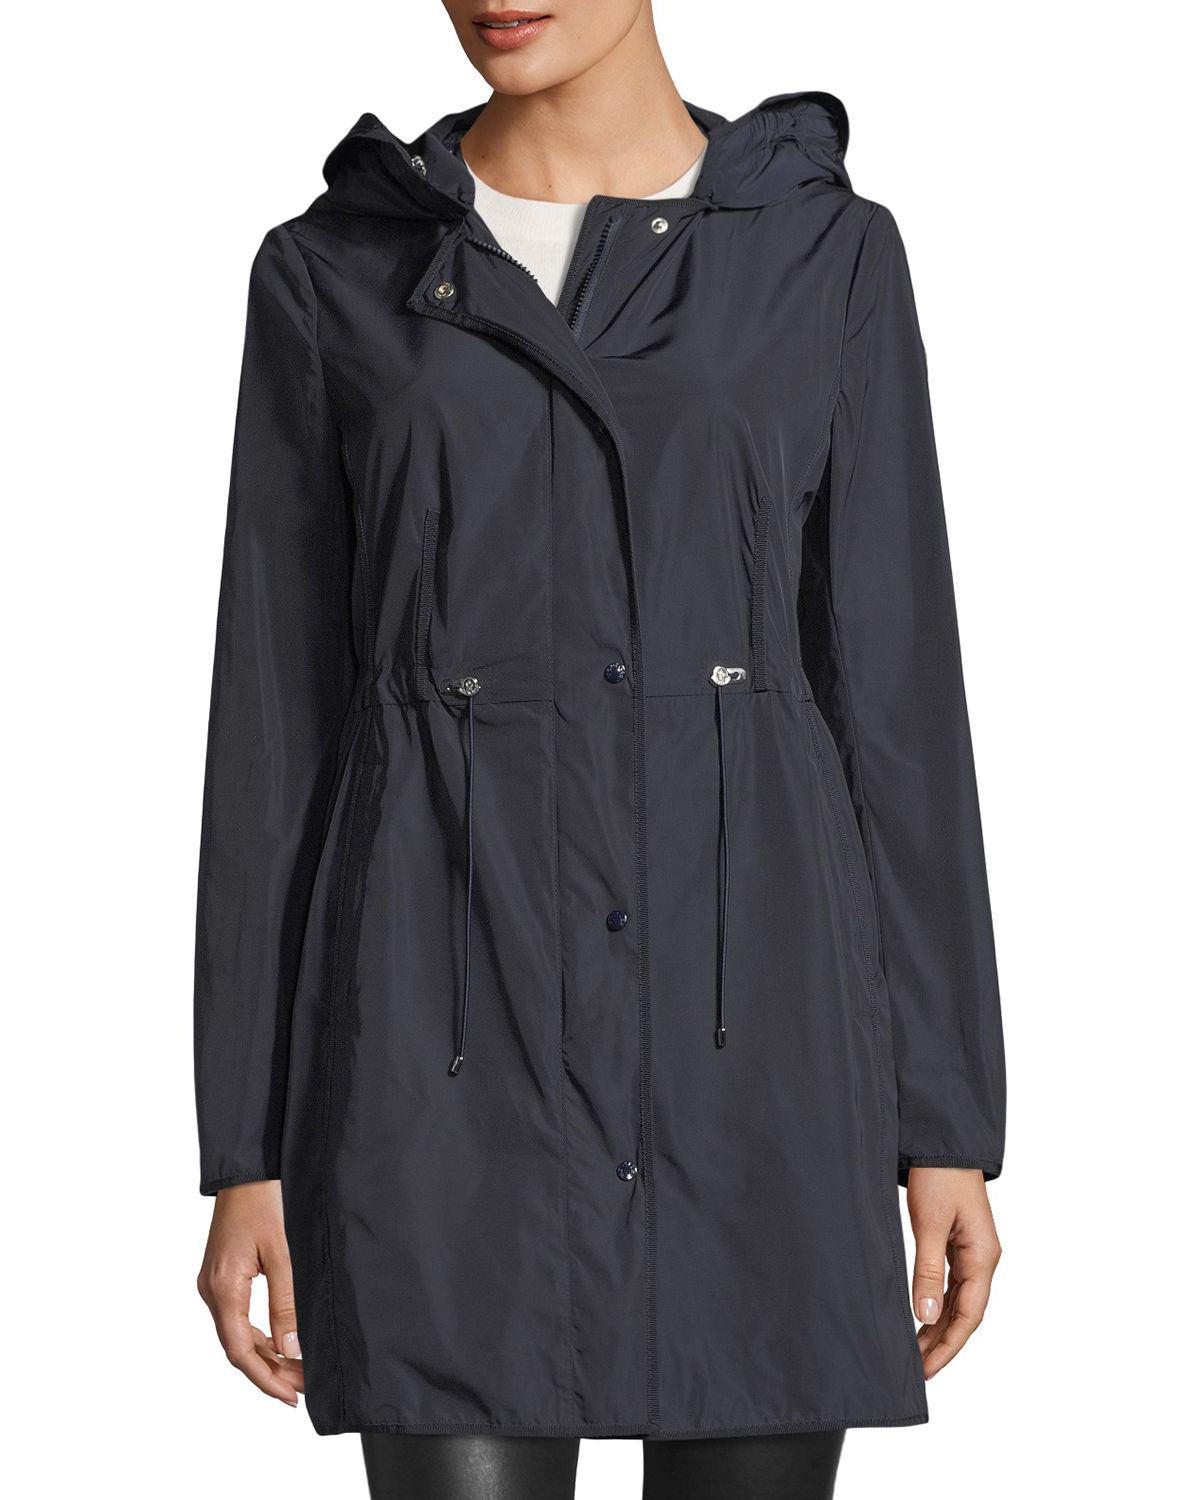 8b8861067 Anthemis Lightweight Raincoat